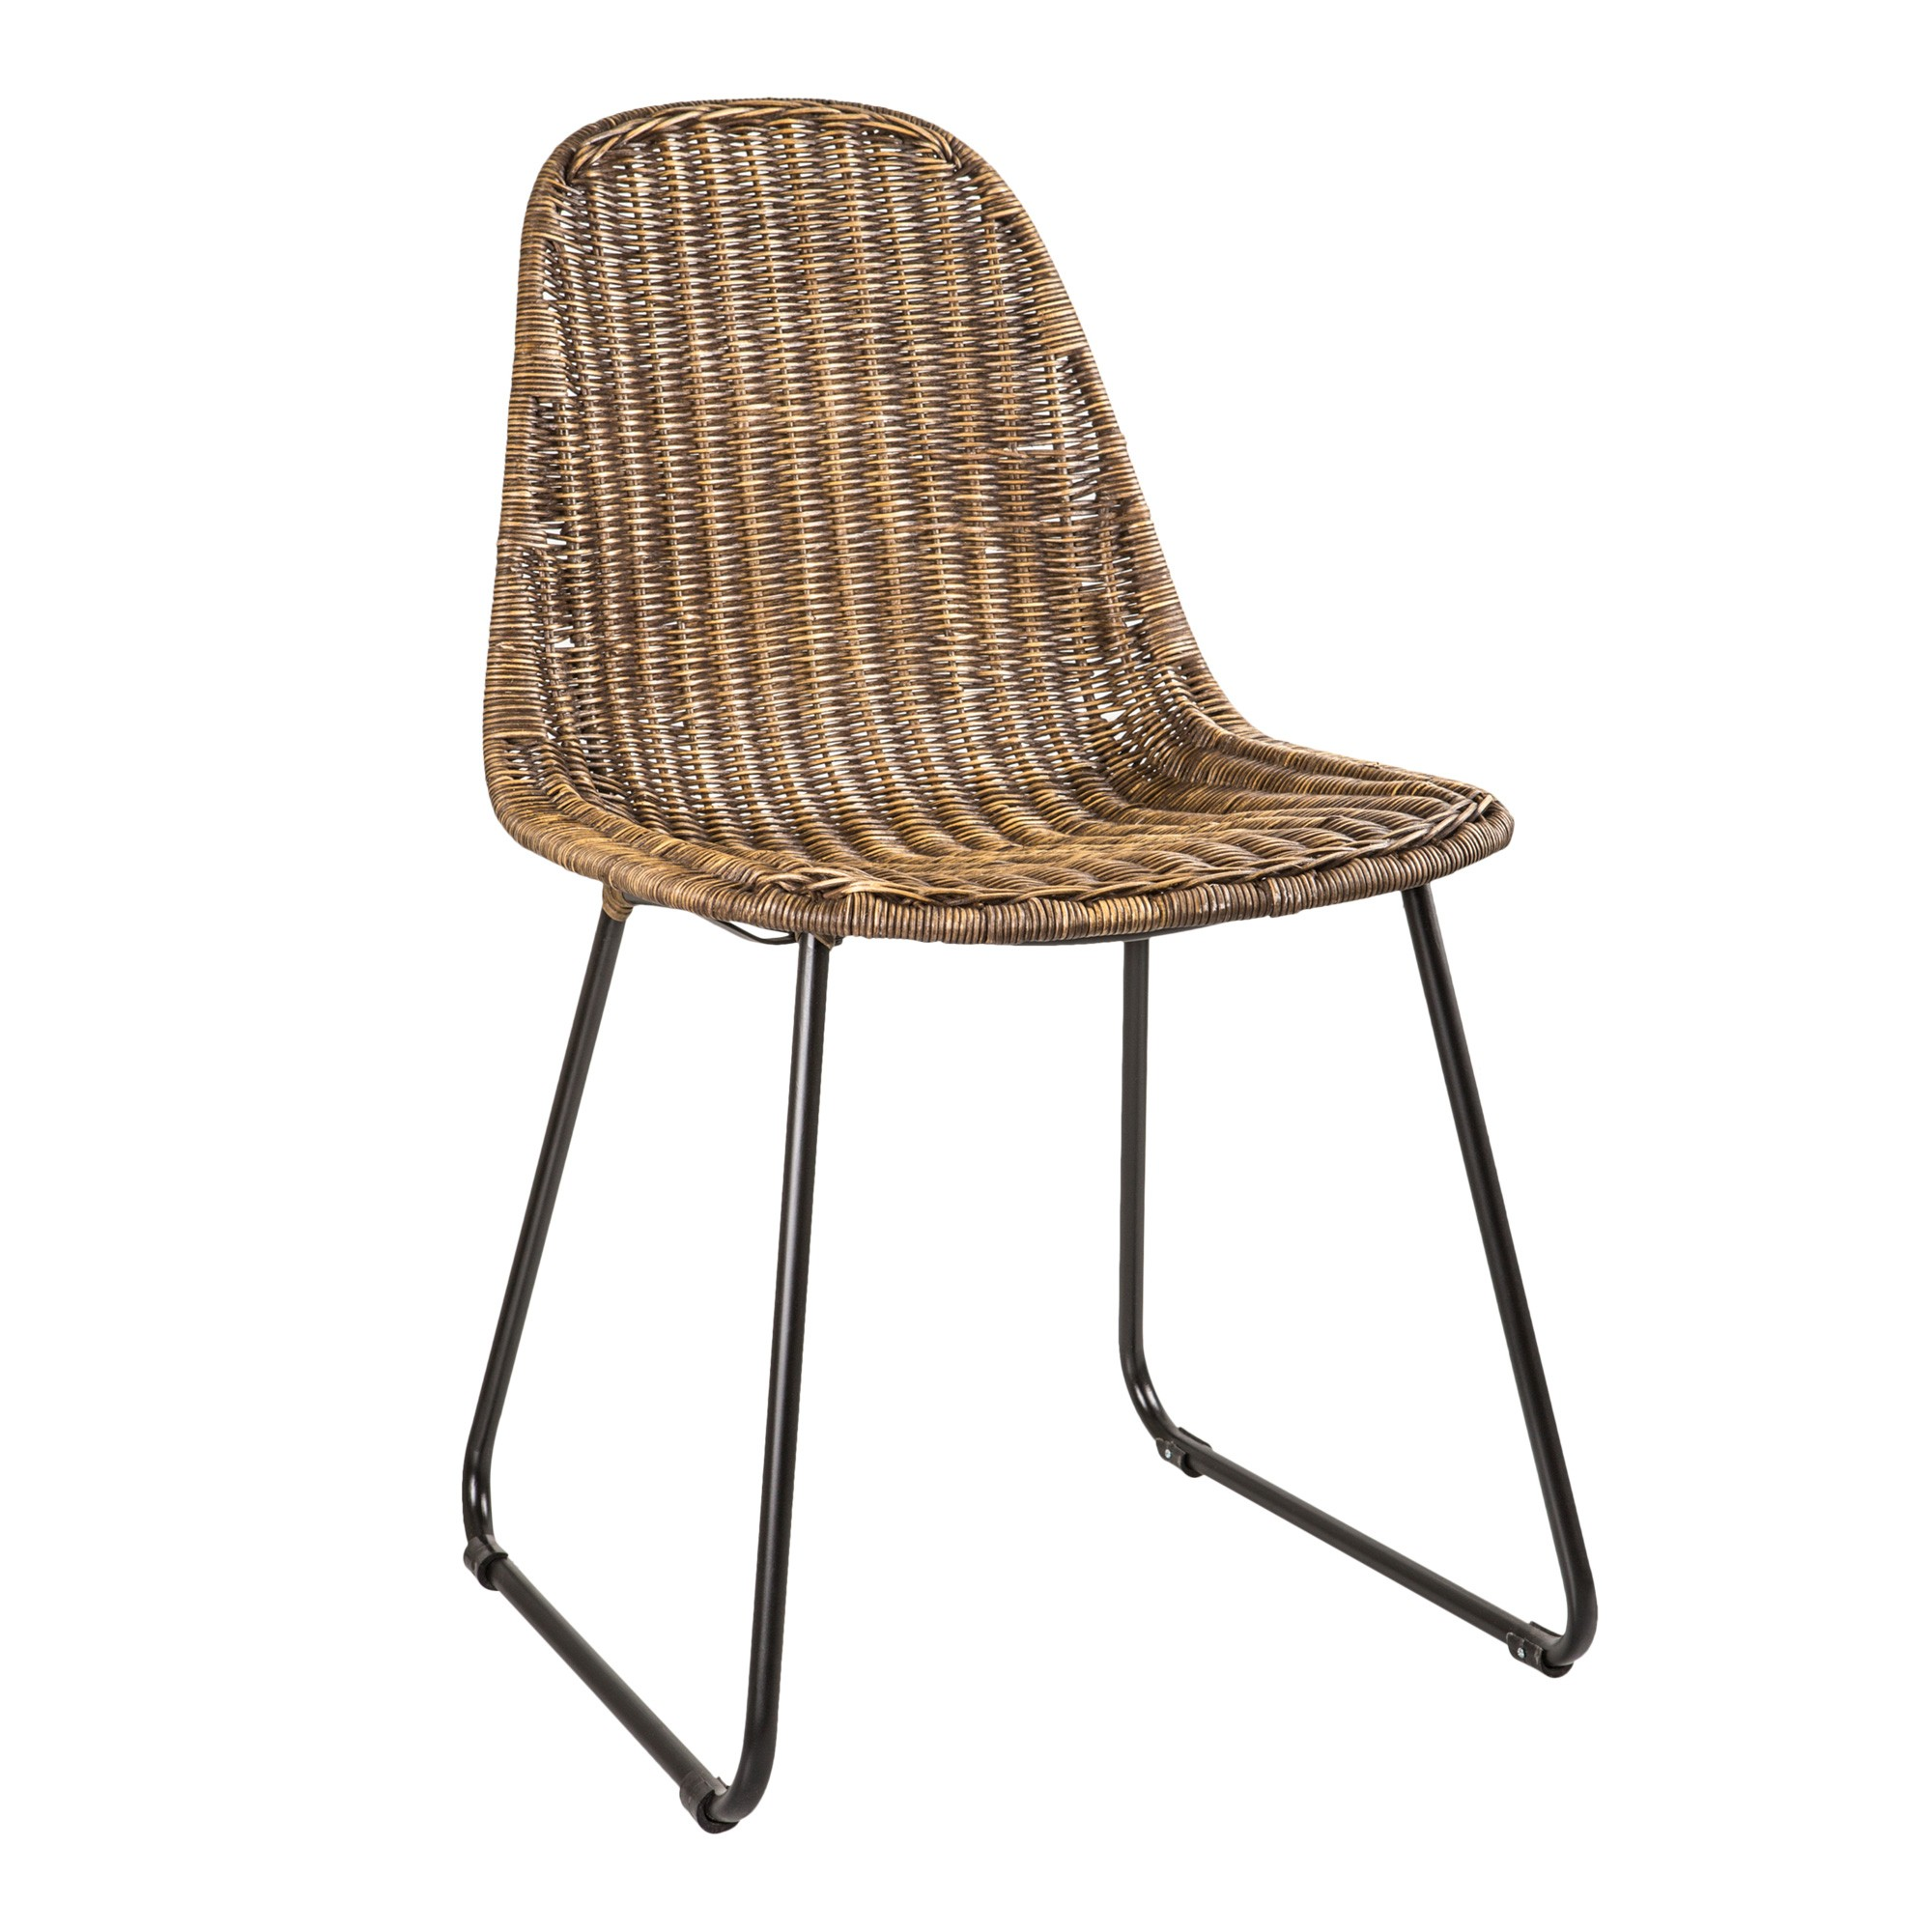 Cicio Rattan & Metal Dining Chair, Black Wash